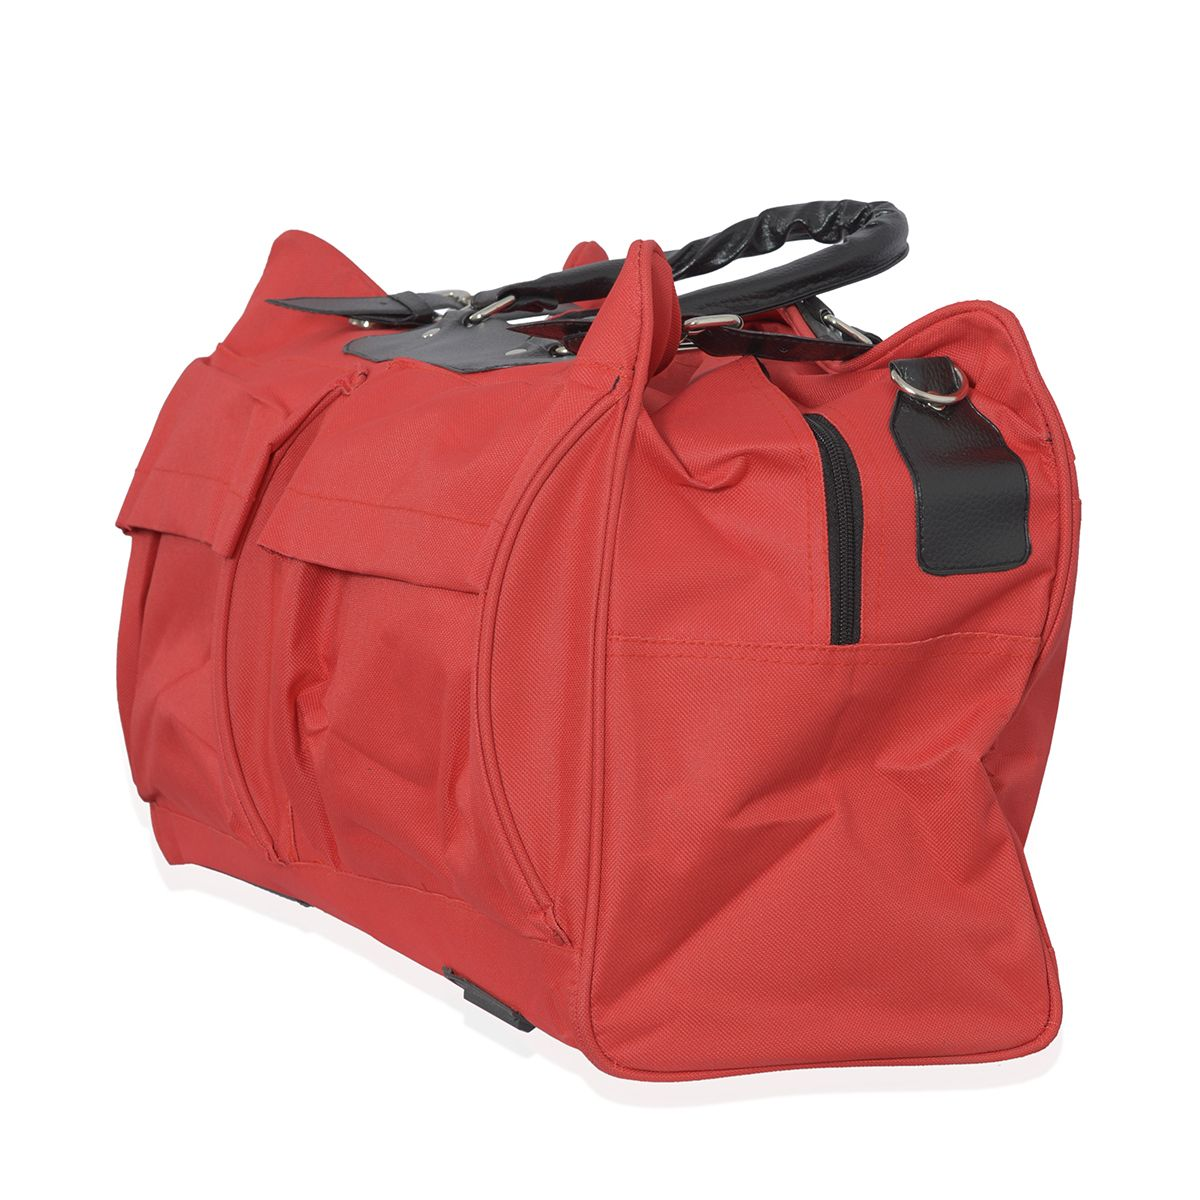 J Francis - Daytime Adventures Red 100% Polyester Travel Bag (19x13x8 in)